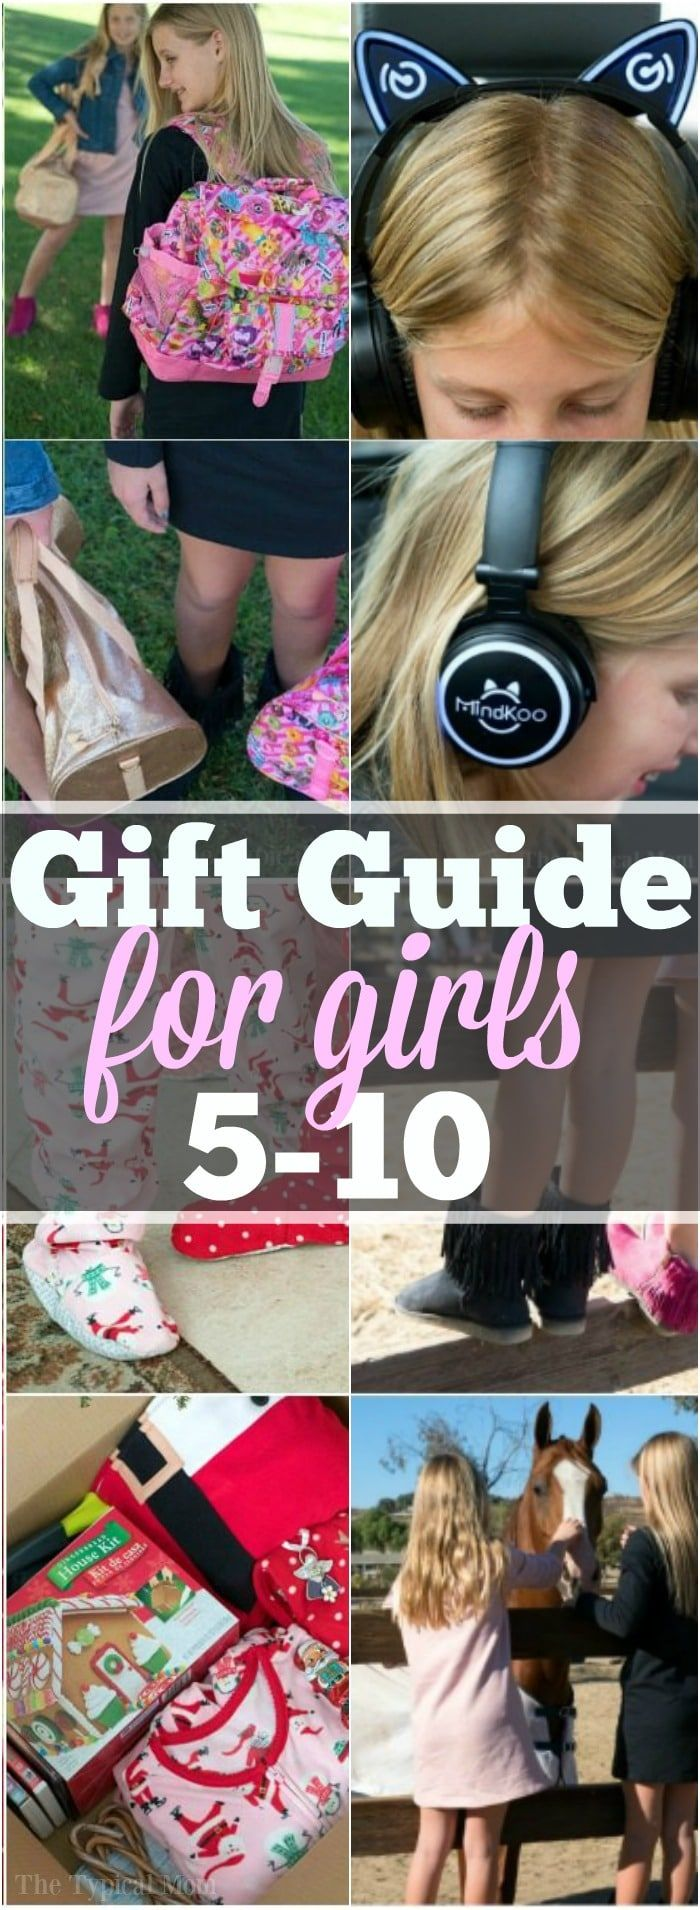 heres the ultimate gift guide for girls 5 10 years old what girls want for christmas and their birthdays at that age thats fun and whats practical too